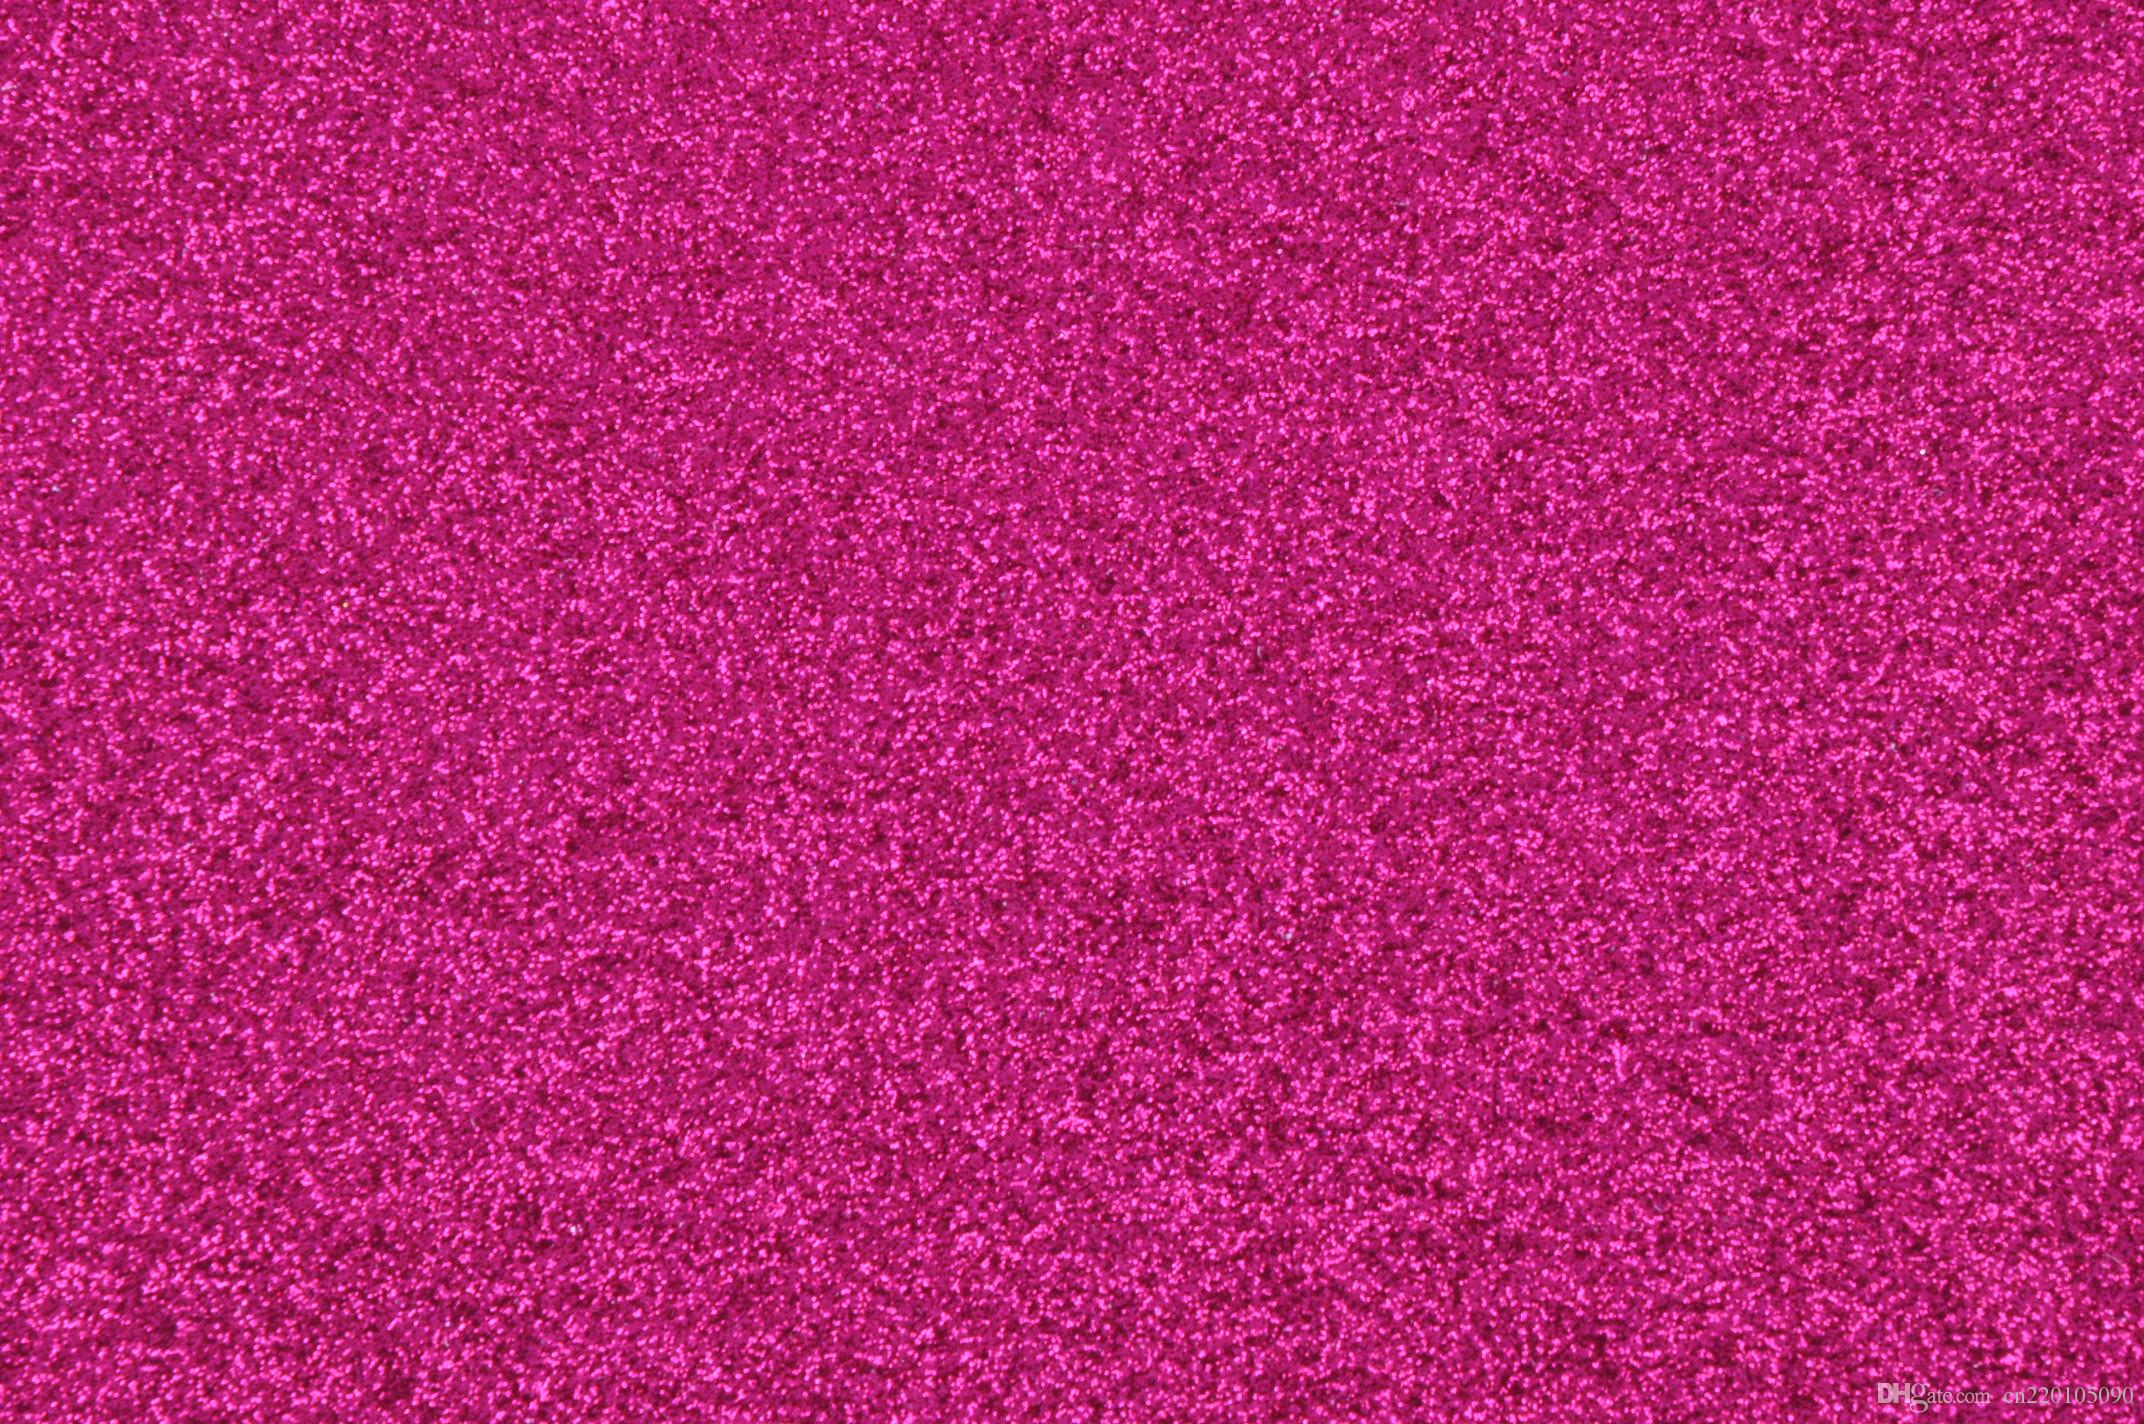 JC Pack Eco friendly Shining Glitter Fabric durable Glitter Fabric